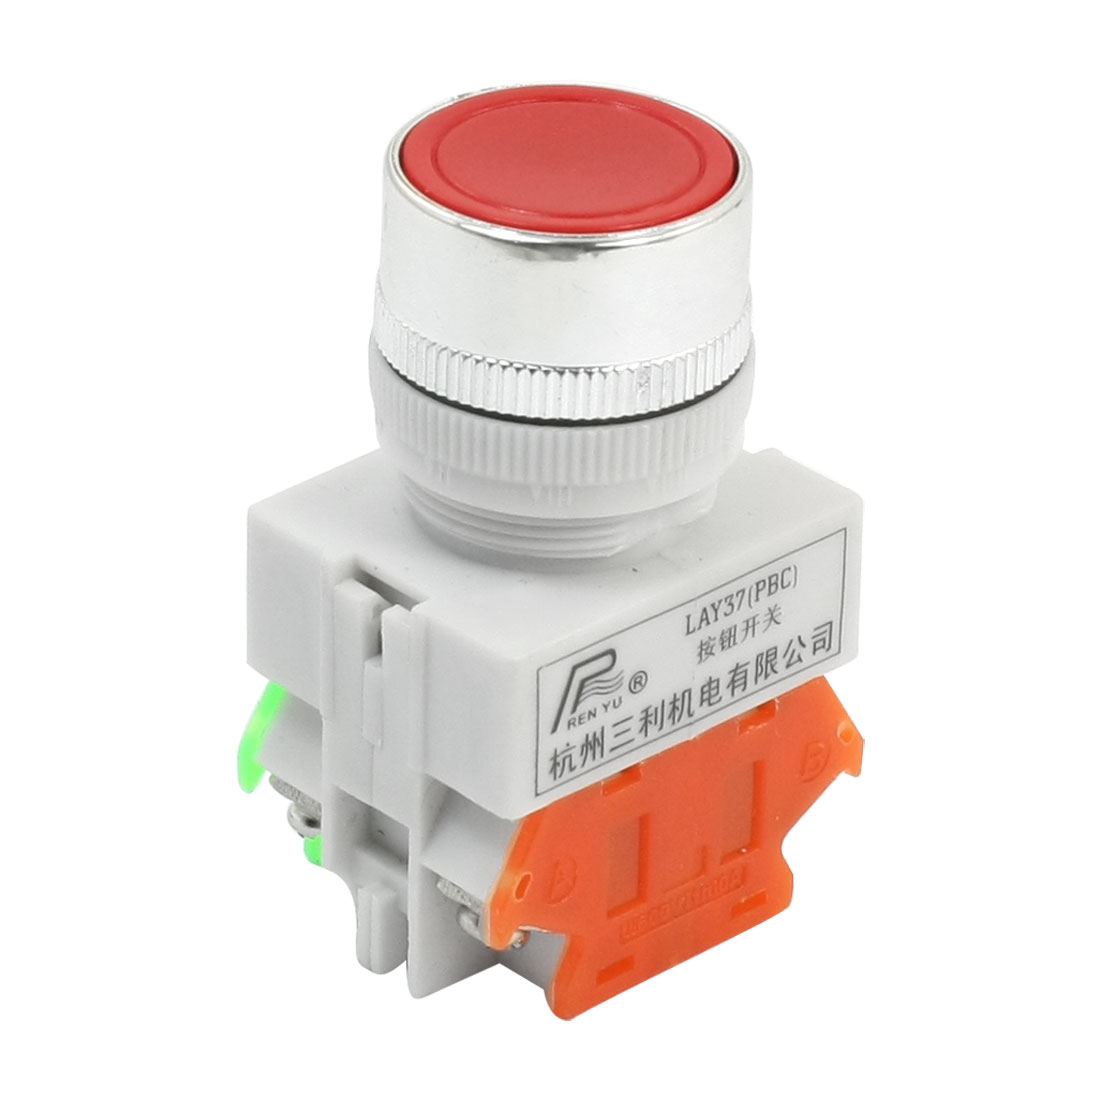 Ui 600V Ith 10A 23mm Thread Panel Mounting DPST 1NO 1NC 4 Screw Terminal Momentary Action Plastic Push Button Switch